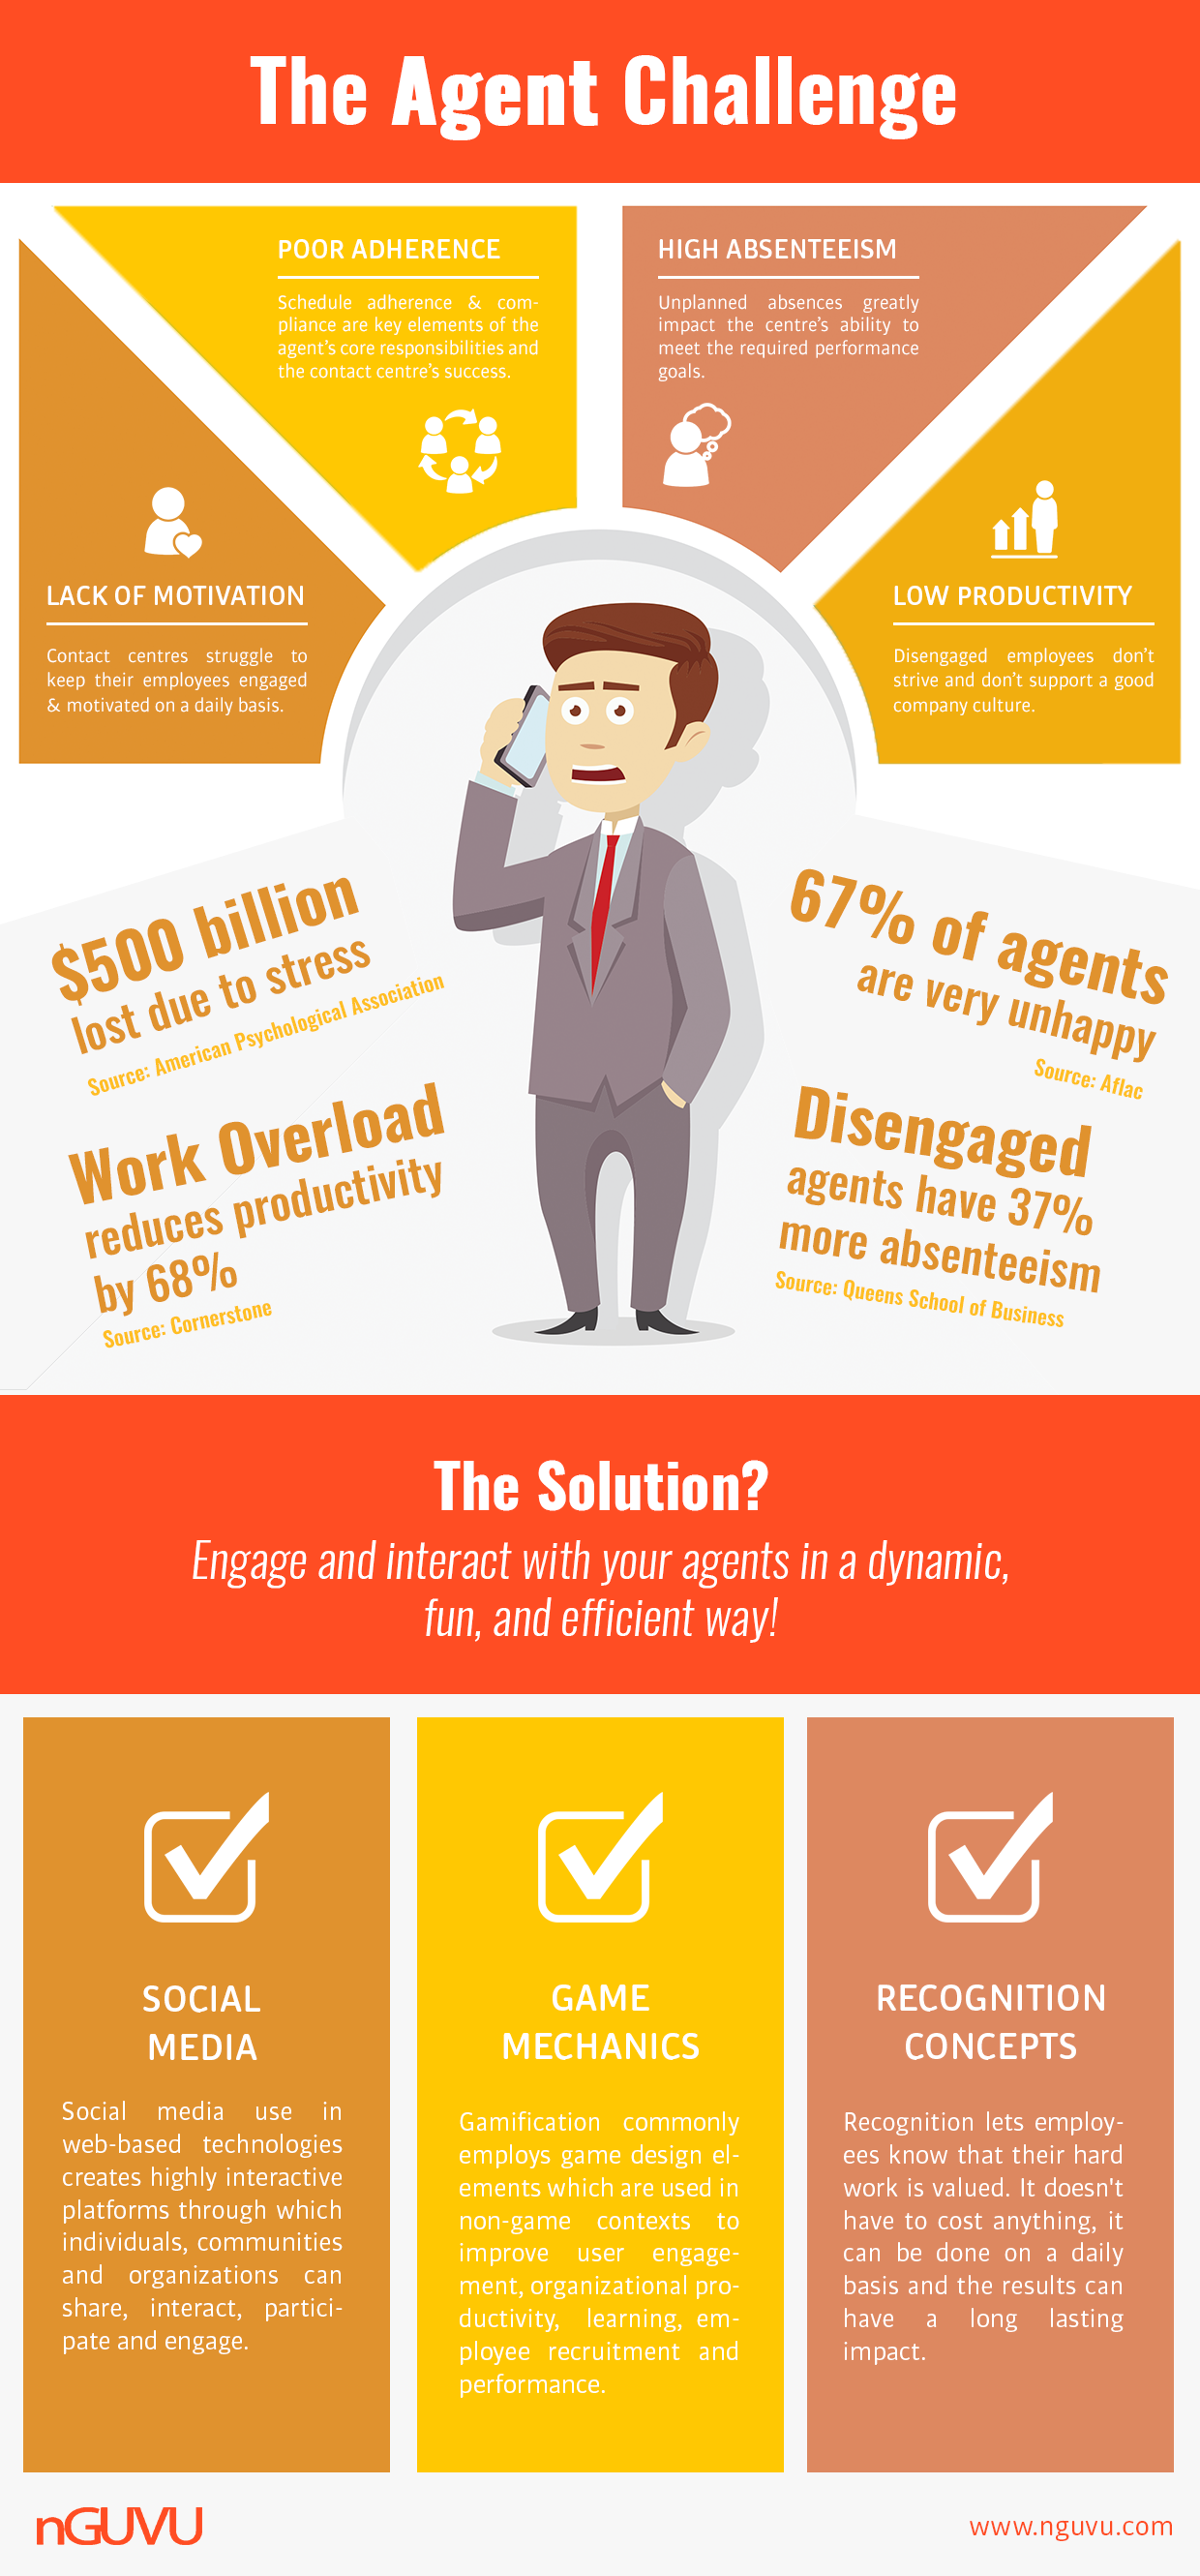 The agent challenge and solution